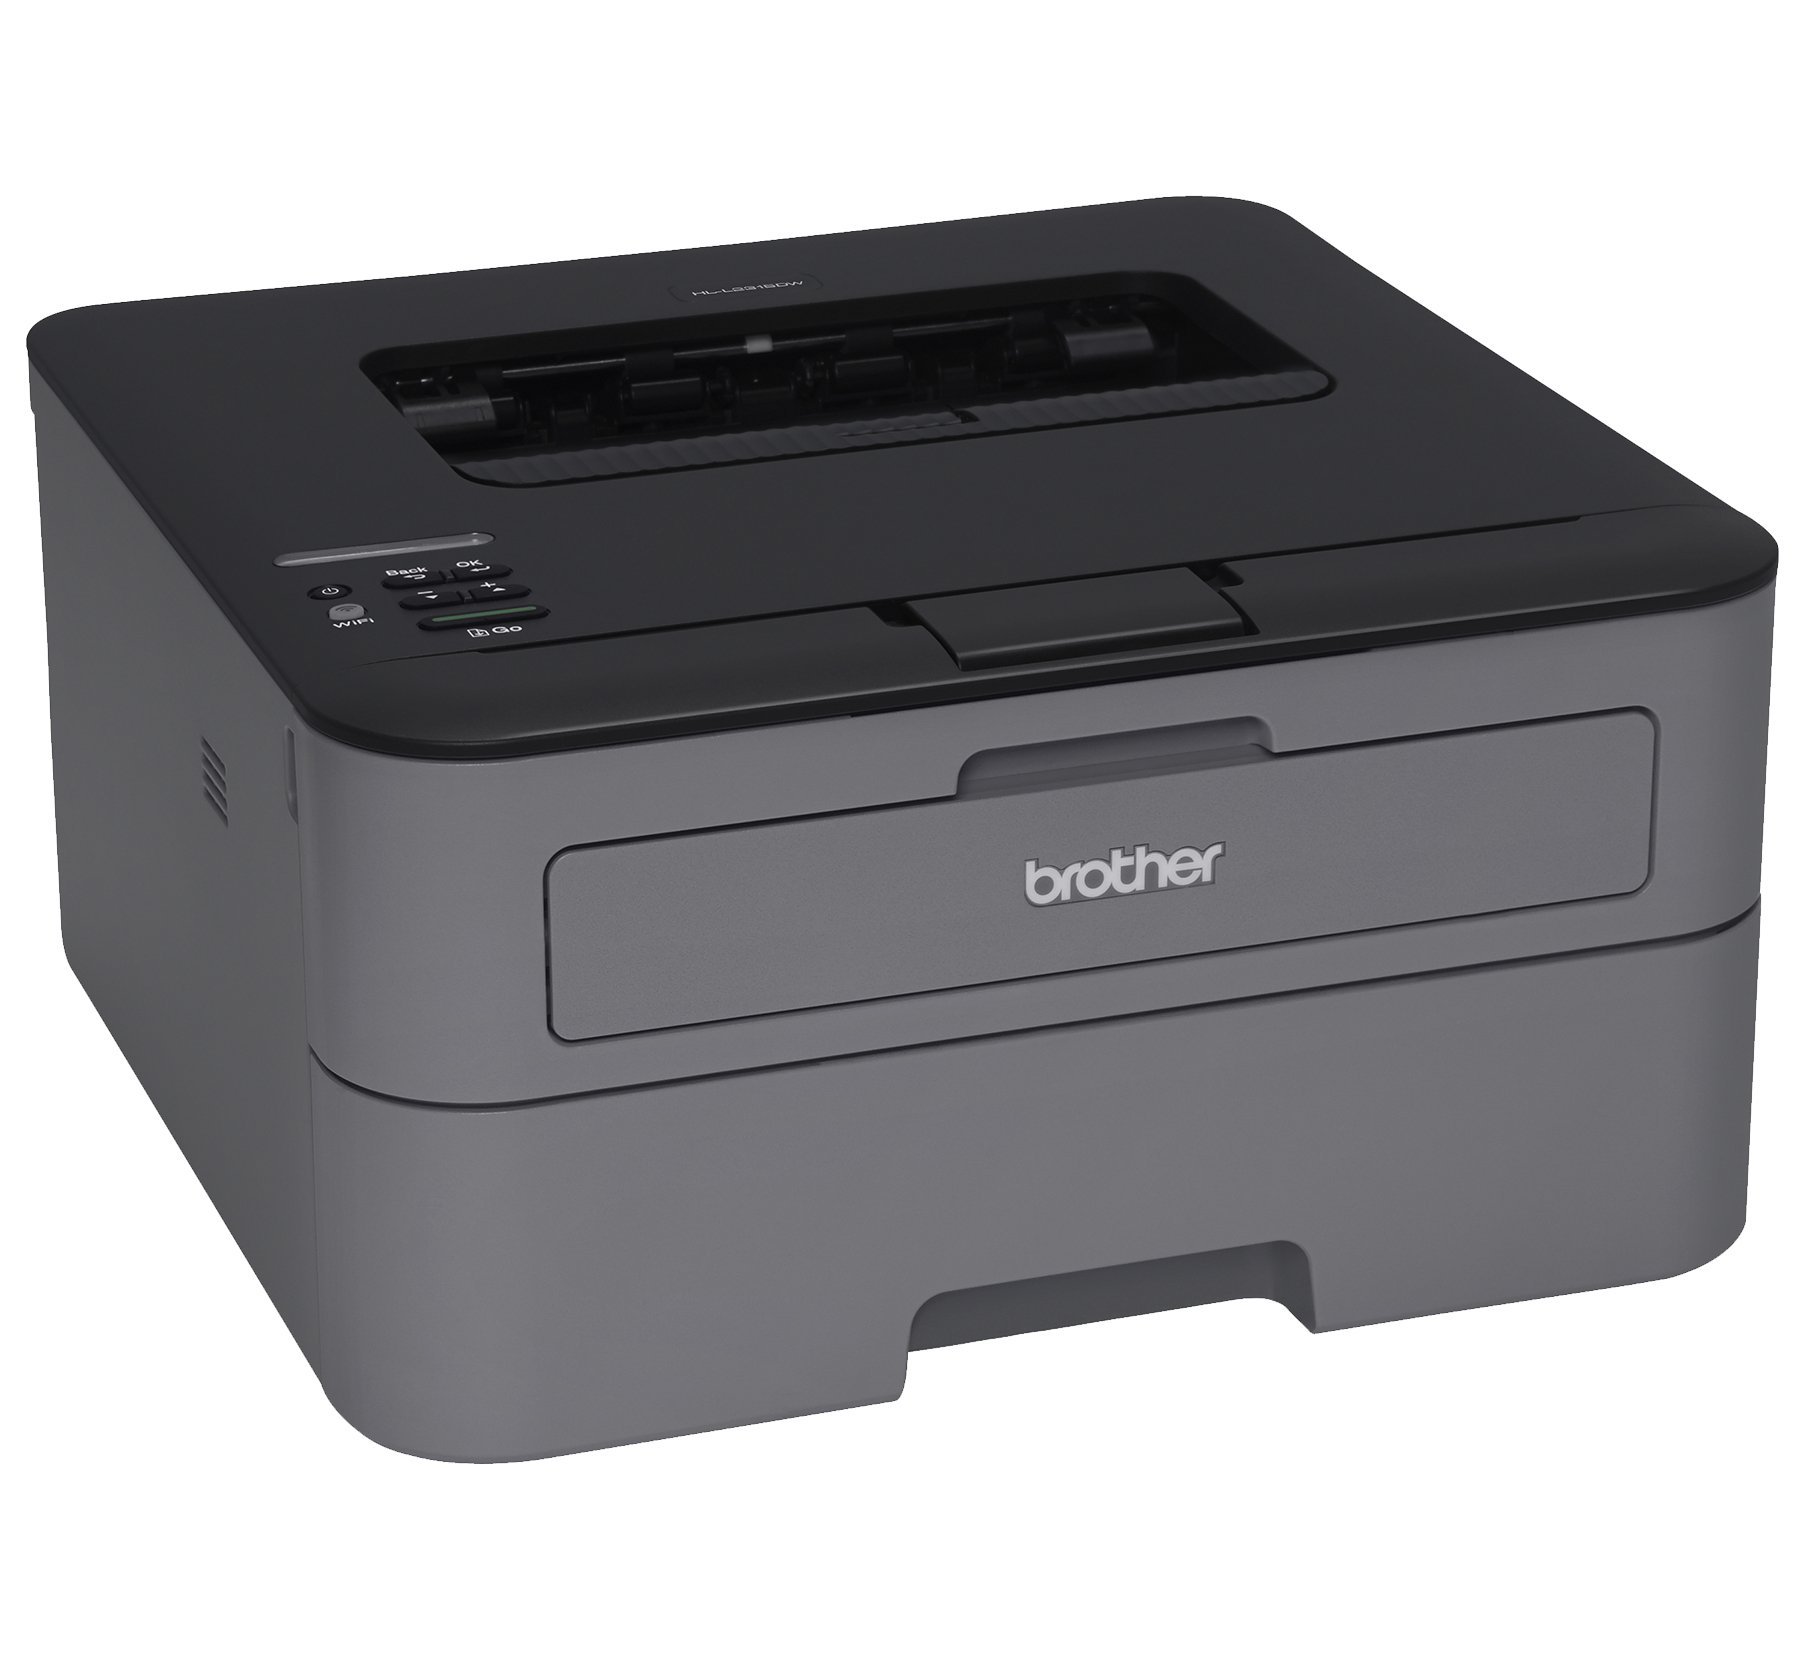 Brother Compact Monochrome Laser Printer, HL-L2315DW